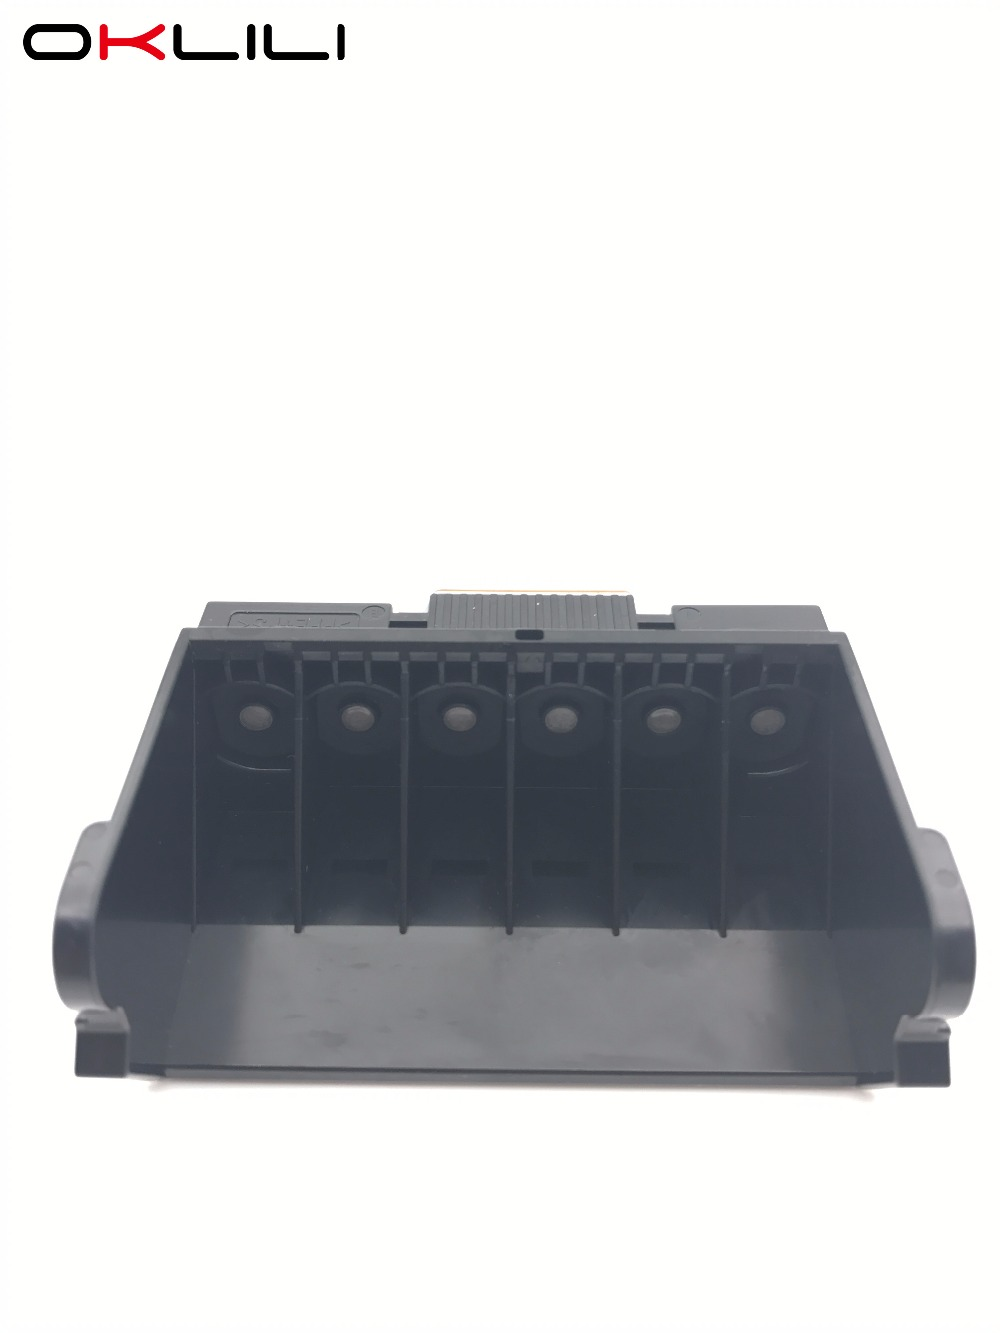 OKLILI ORIGINAL QY6-0063 QY6-0063-000 Printhead Print Head Printer Head for Canon iP6600D iP6700D iP6600 iP6700 high quality original print head qy6 0057 printhead compatible for canon ip5000 ip5000r printer head